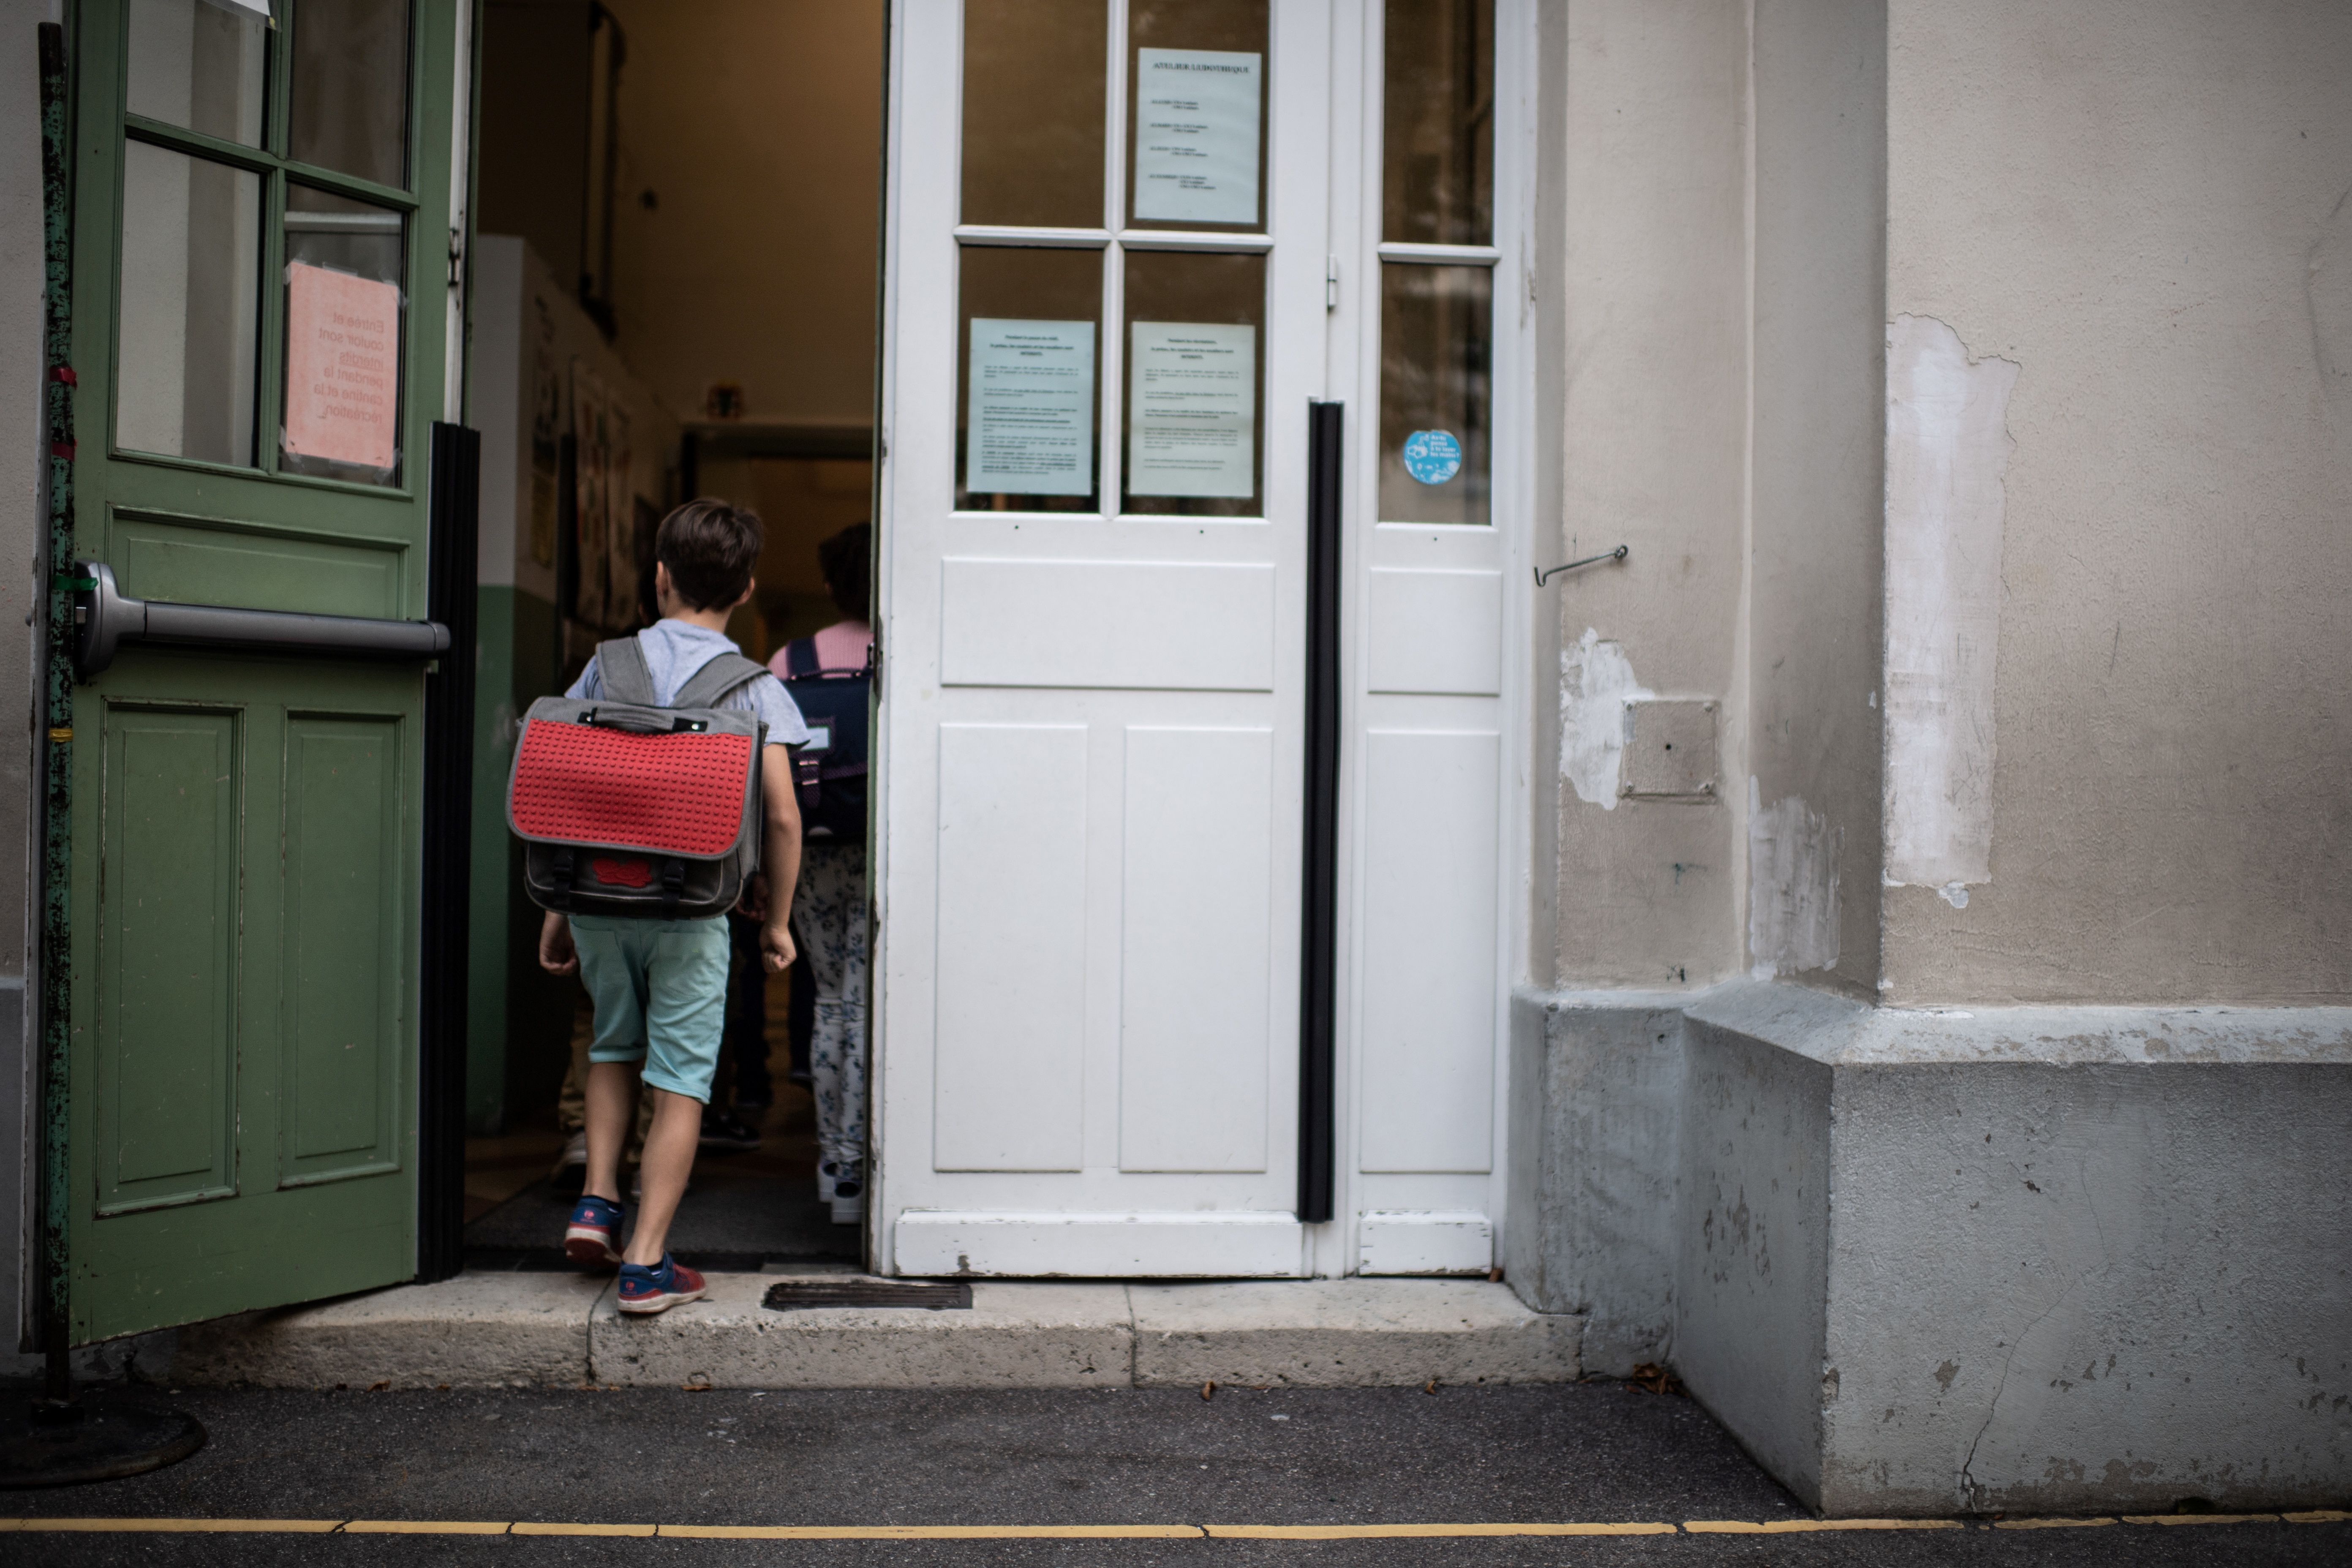 A boy enters in his classroom on the first day of the start of the school year, at the Chaptal elementary school in Paris. (MARTIN BUREAU/AFP via Getty Images)